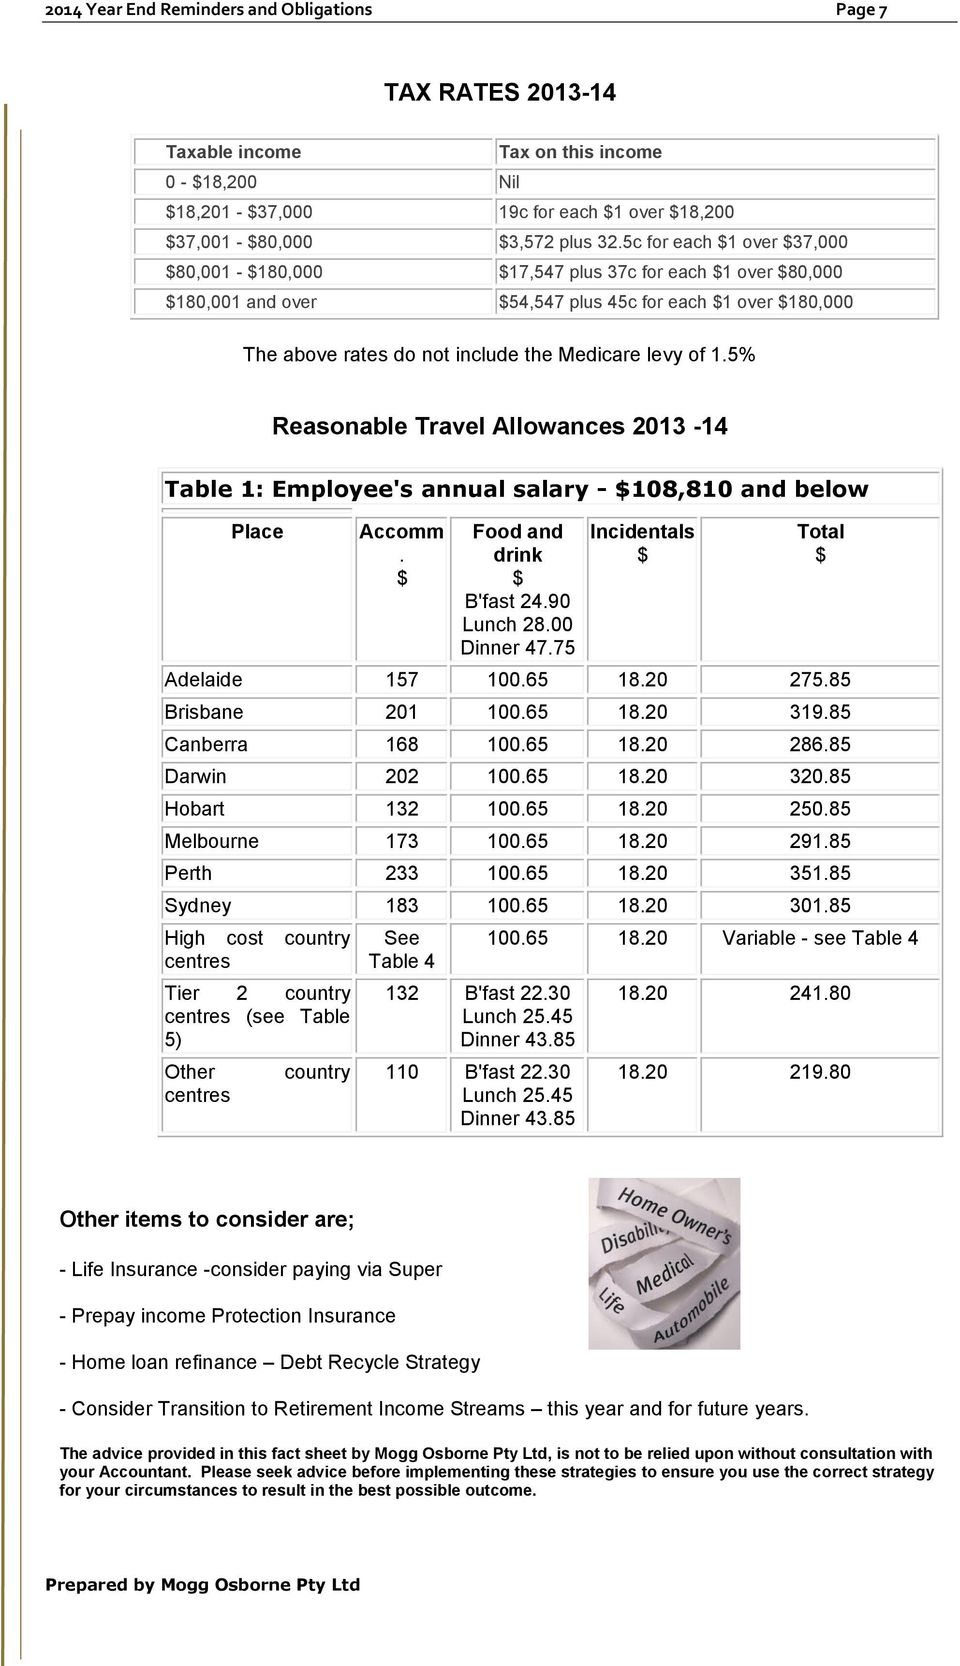 5% Reasonable Travel Allowances 2013-14 Table 1: Employee's annual salary - 108,810 and below Place Accomm. Food and drink B'fast 24.90 Lunch 28.00 Dinner 47.75 Incidentals Total Adelaide 157 100.